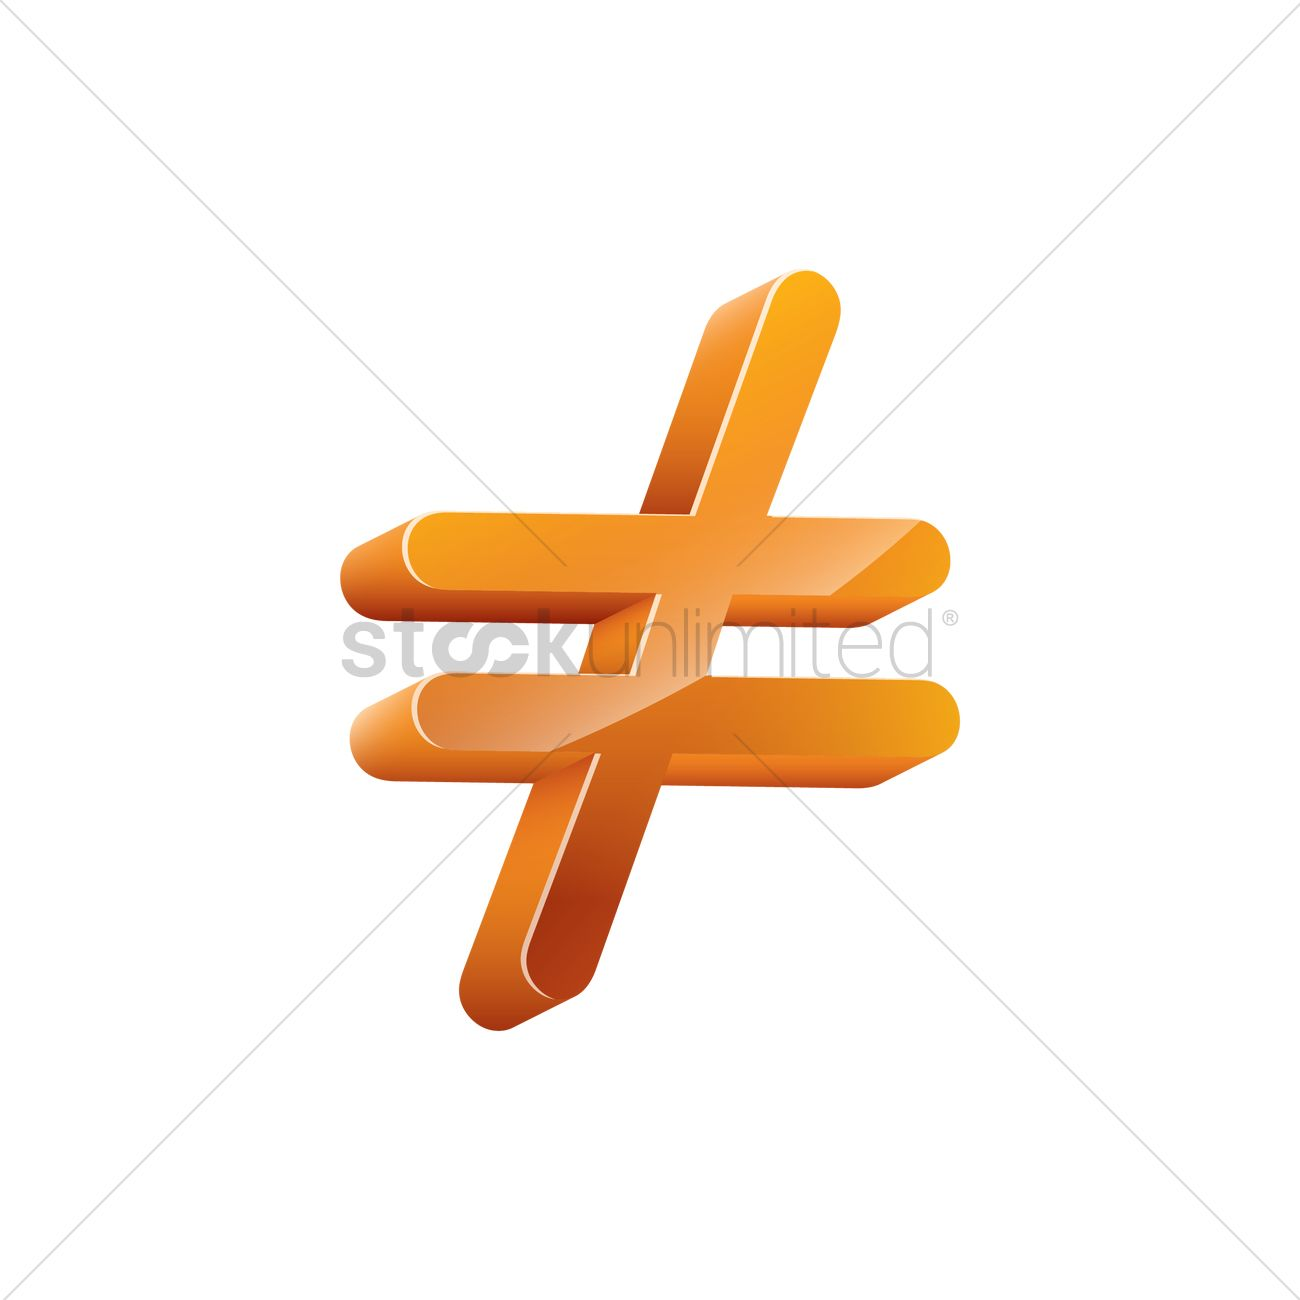 3d Inequality Symbol Vector Image 1828109 Stockunlimited